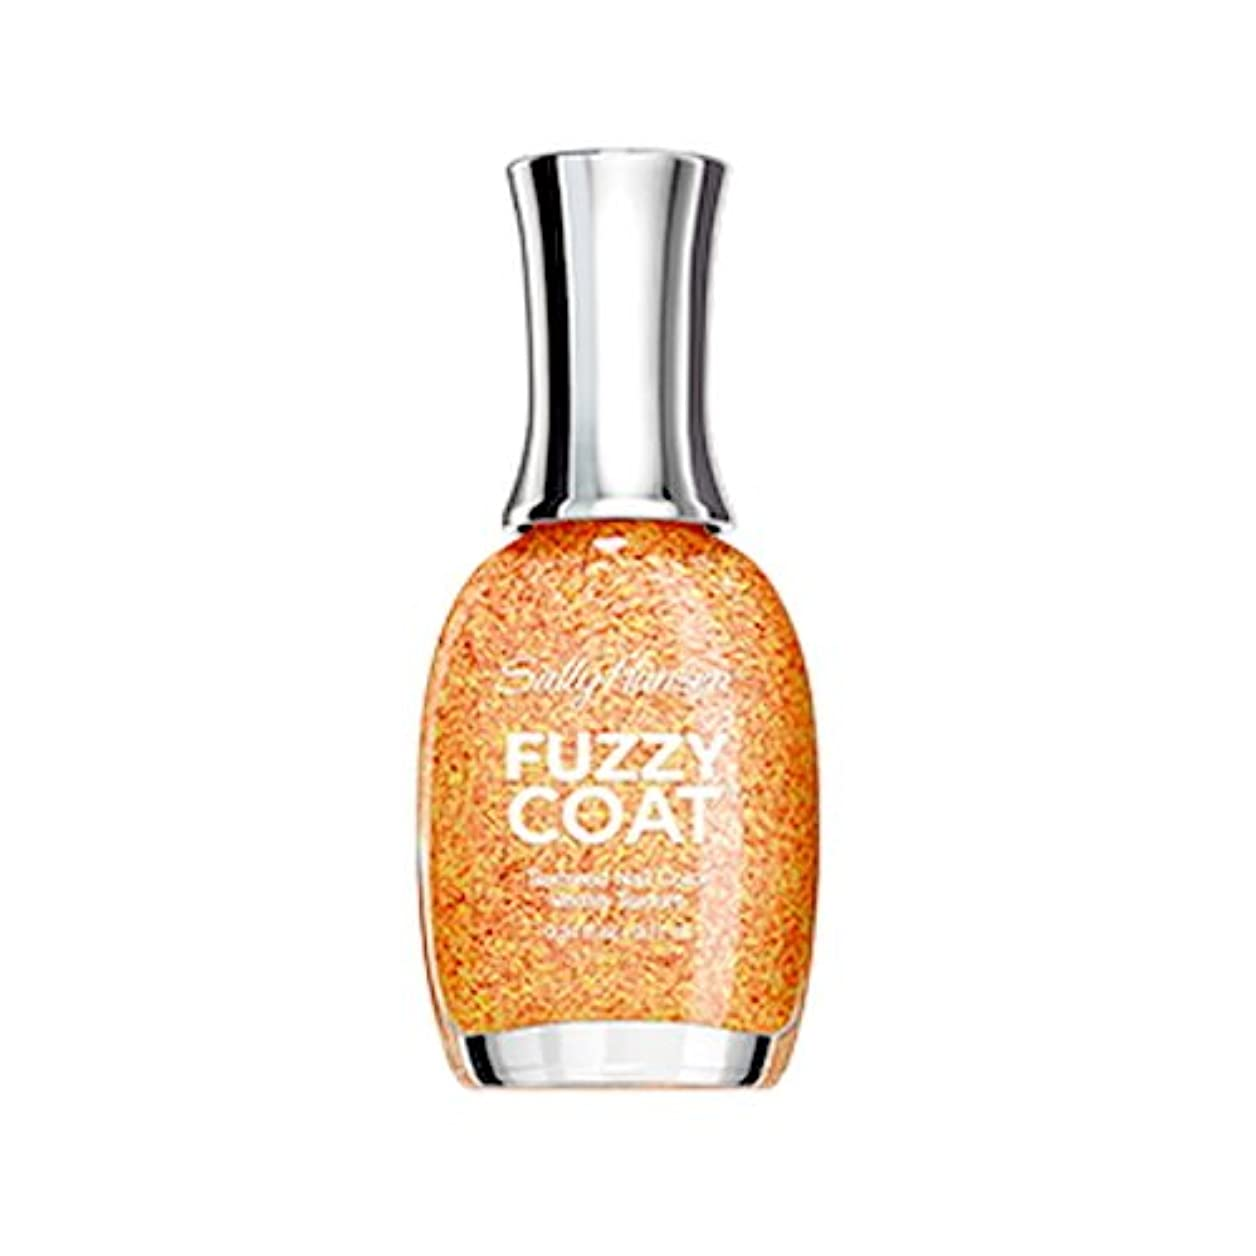 素晴らしさランドリー建てるSALLY HANSEN Fuzzy Coat Special Effect Textured Nail Color - Peach Fuzz (並行輸入品)